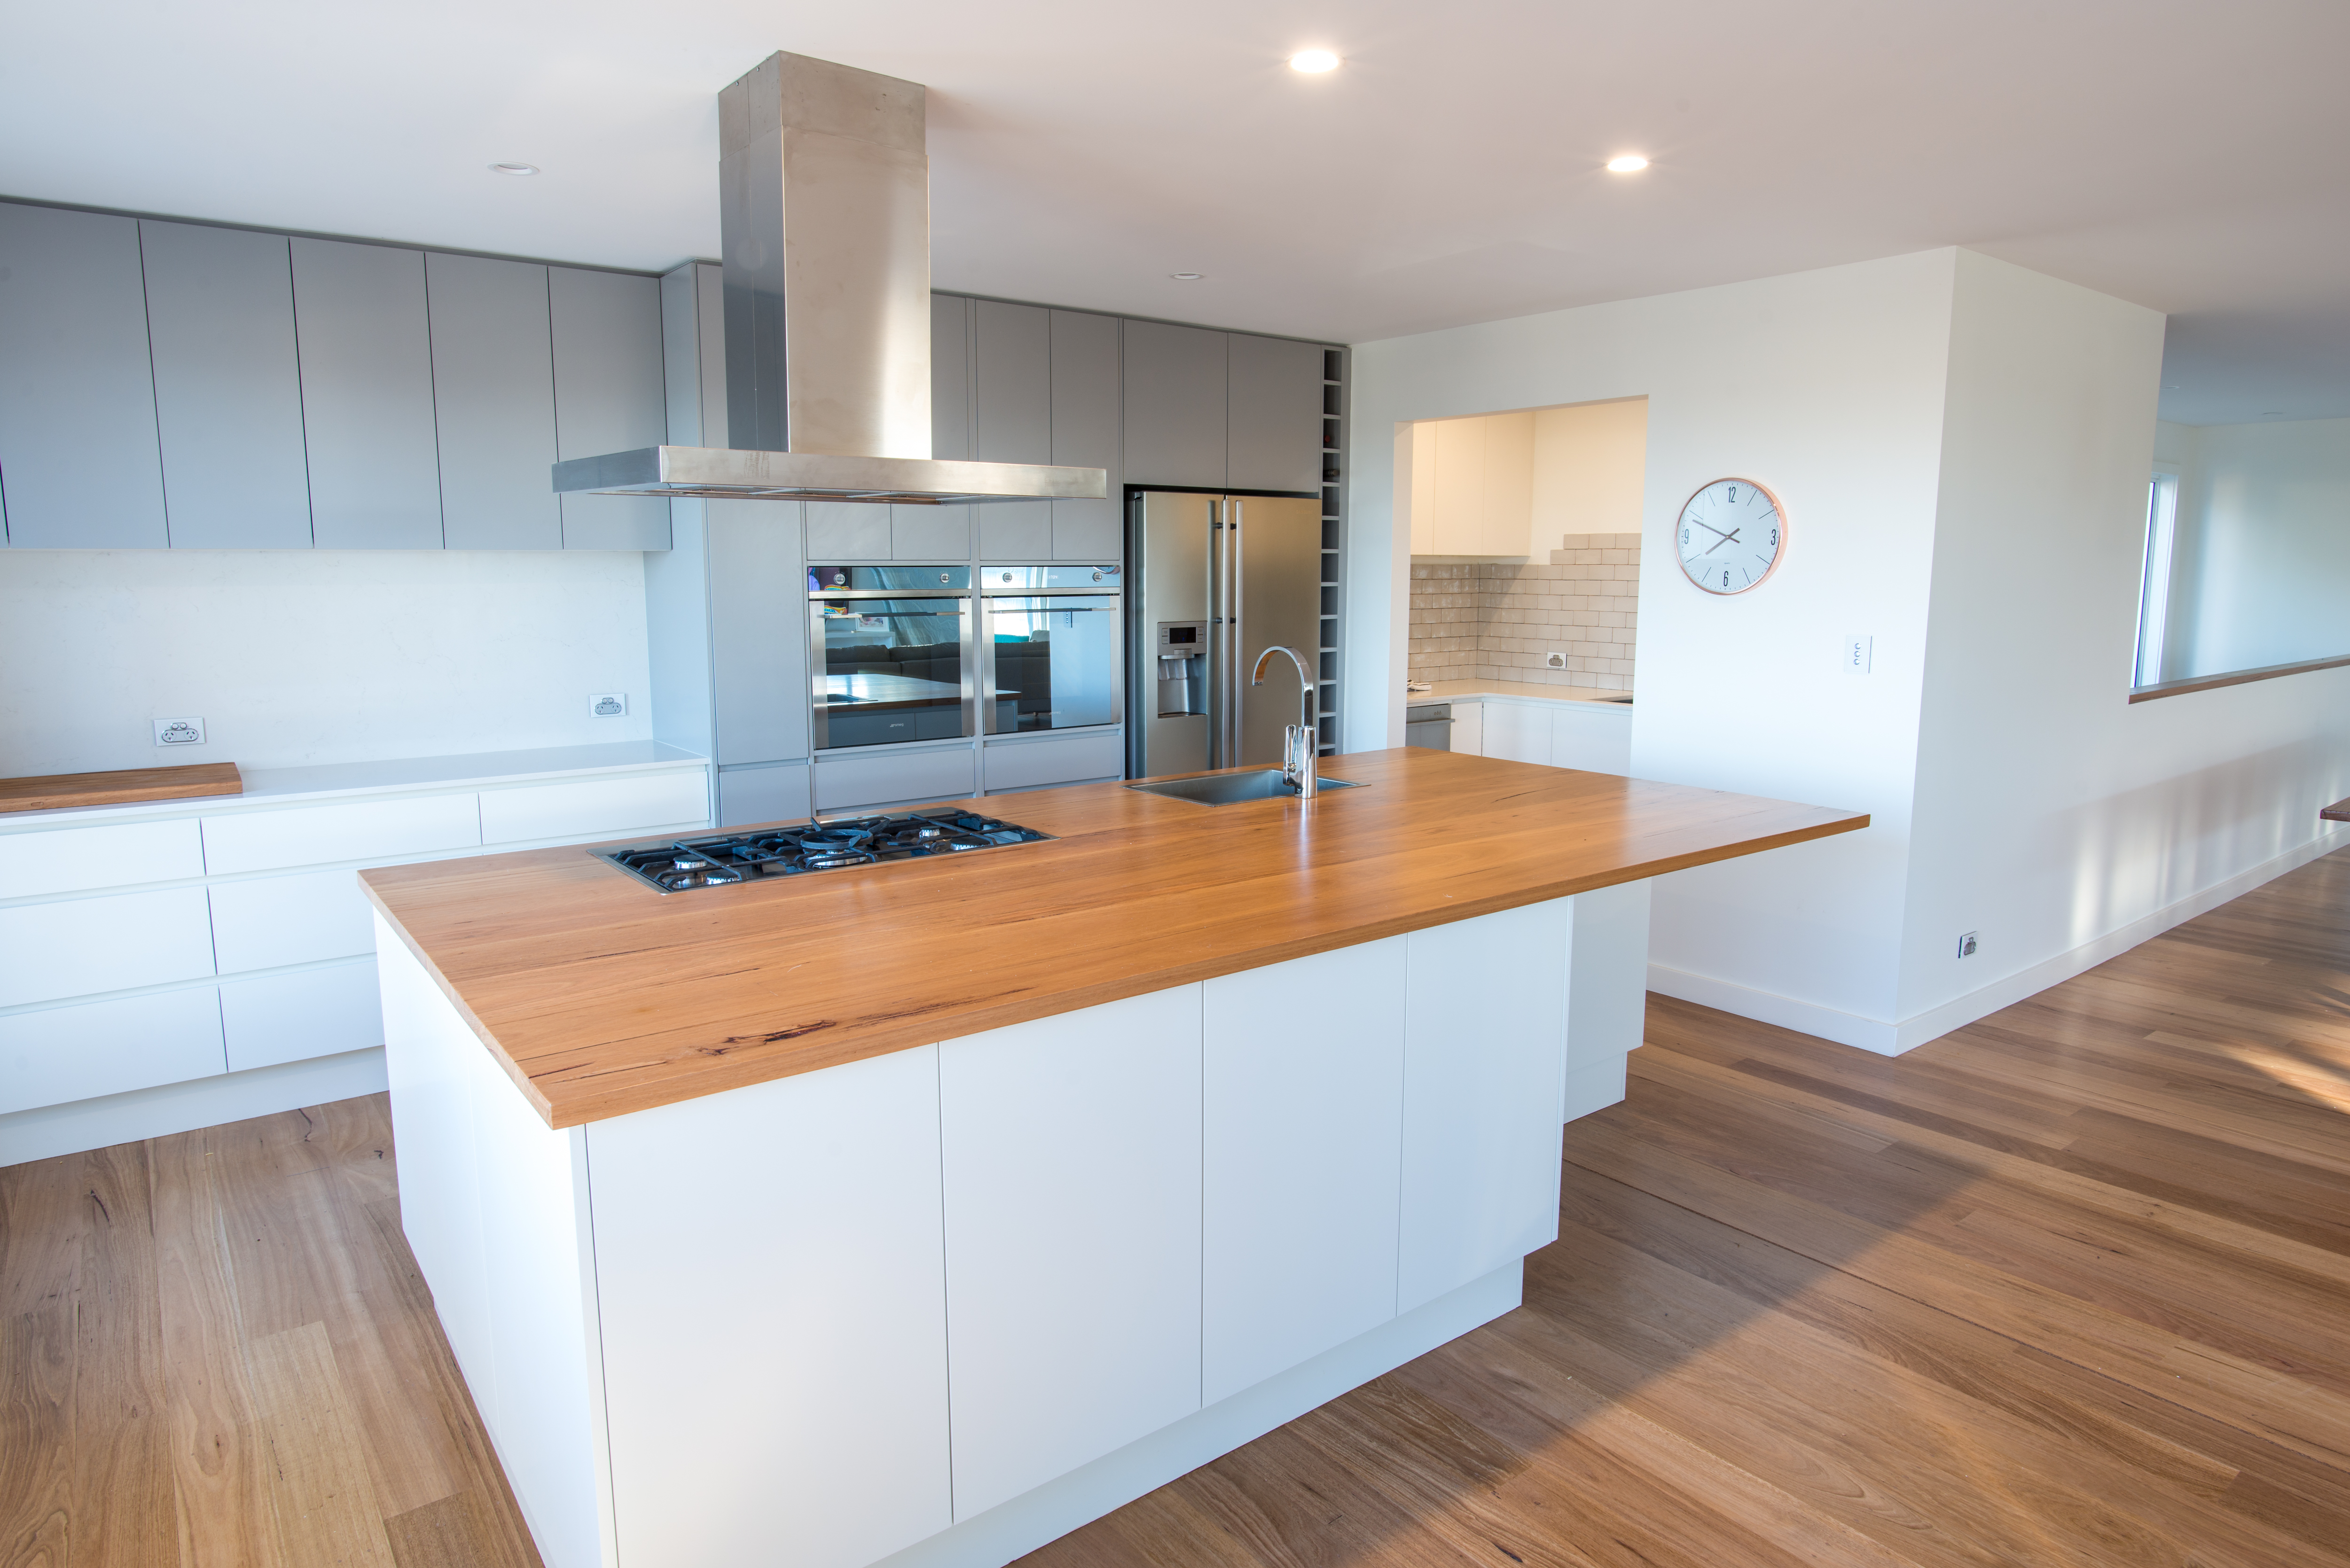 COOPERS STORE EST 1985 Bespoke Timber Kitchen Benchtops